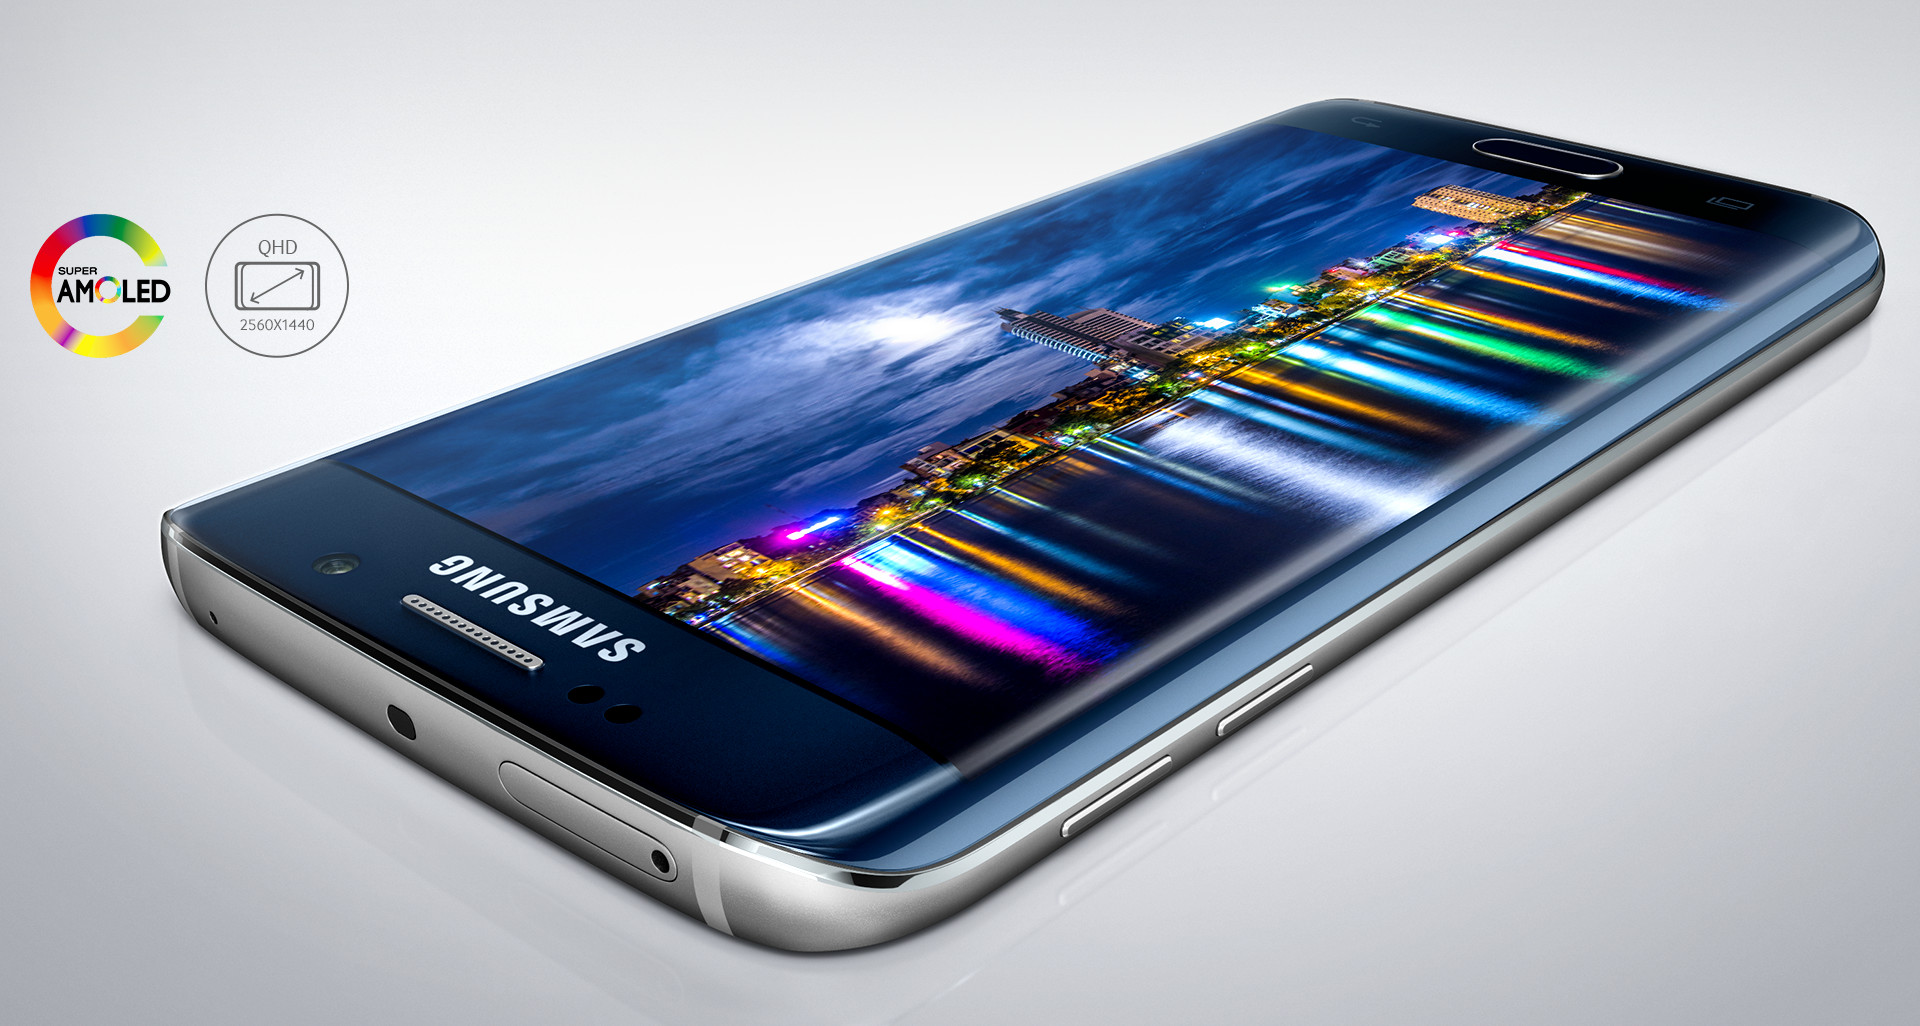 Samsung Galaxy S6 Edge Pictures Download Desktop Wallpaper 1920x1026